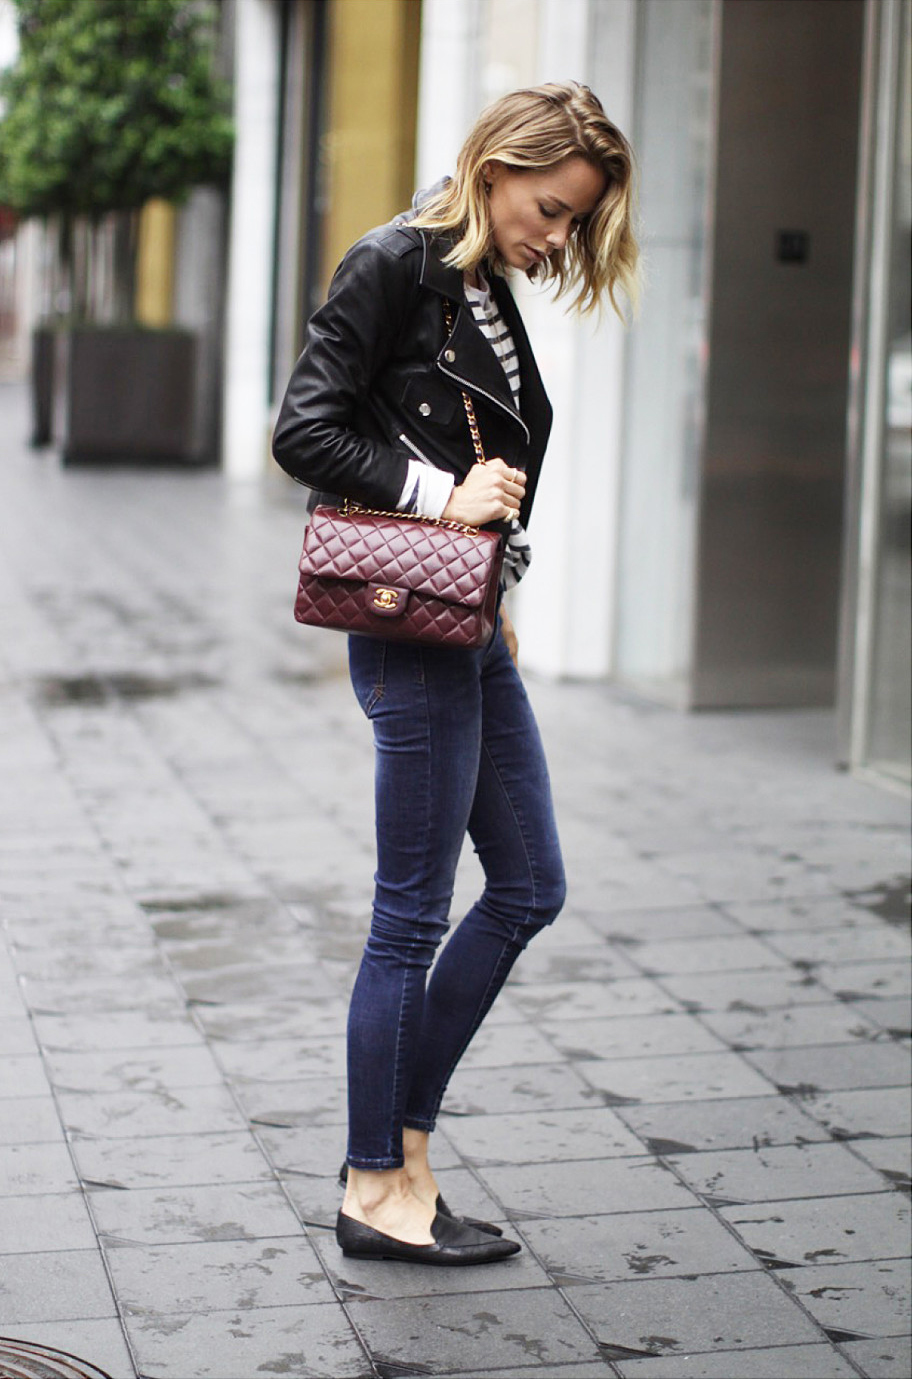 Anine Bing is wearing jeans, black cropped leather jacket, loafers and striped top from Anine Bing and the bag is vintage Chanel